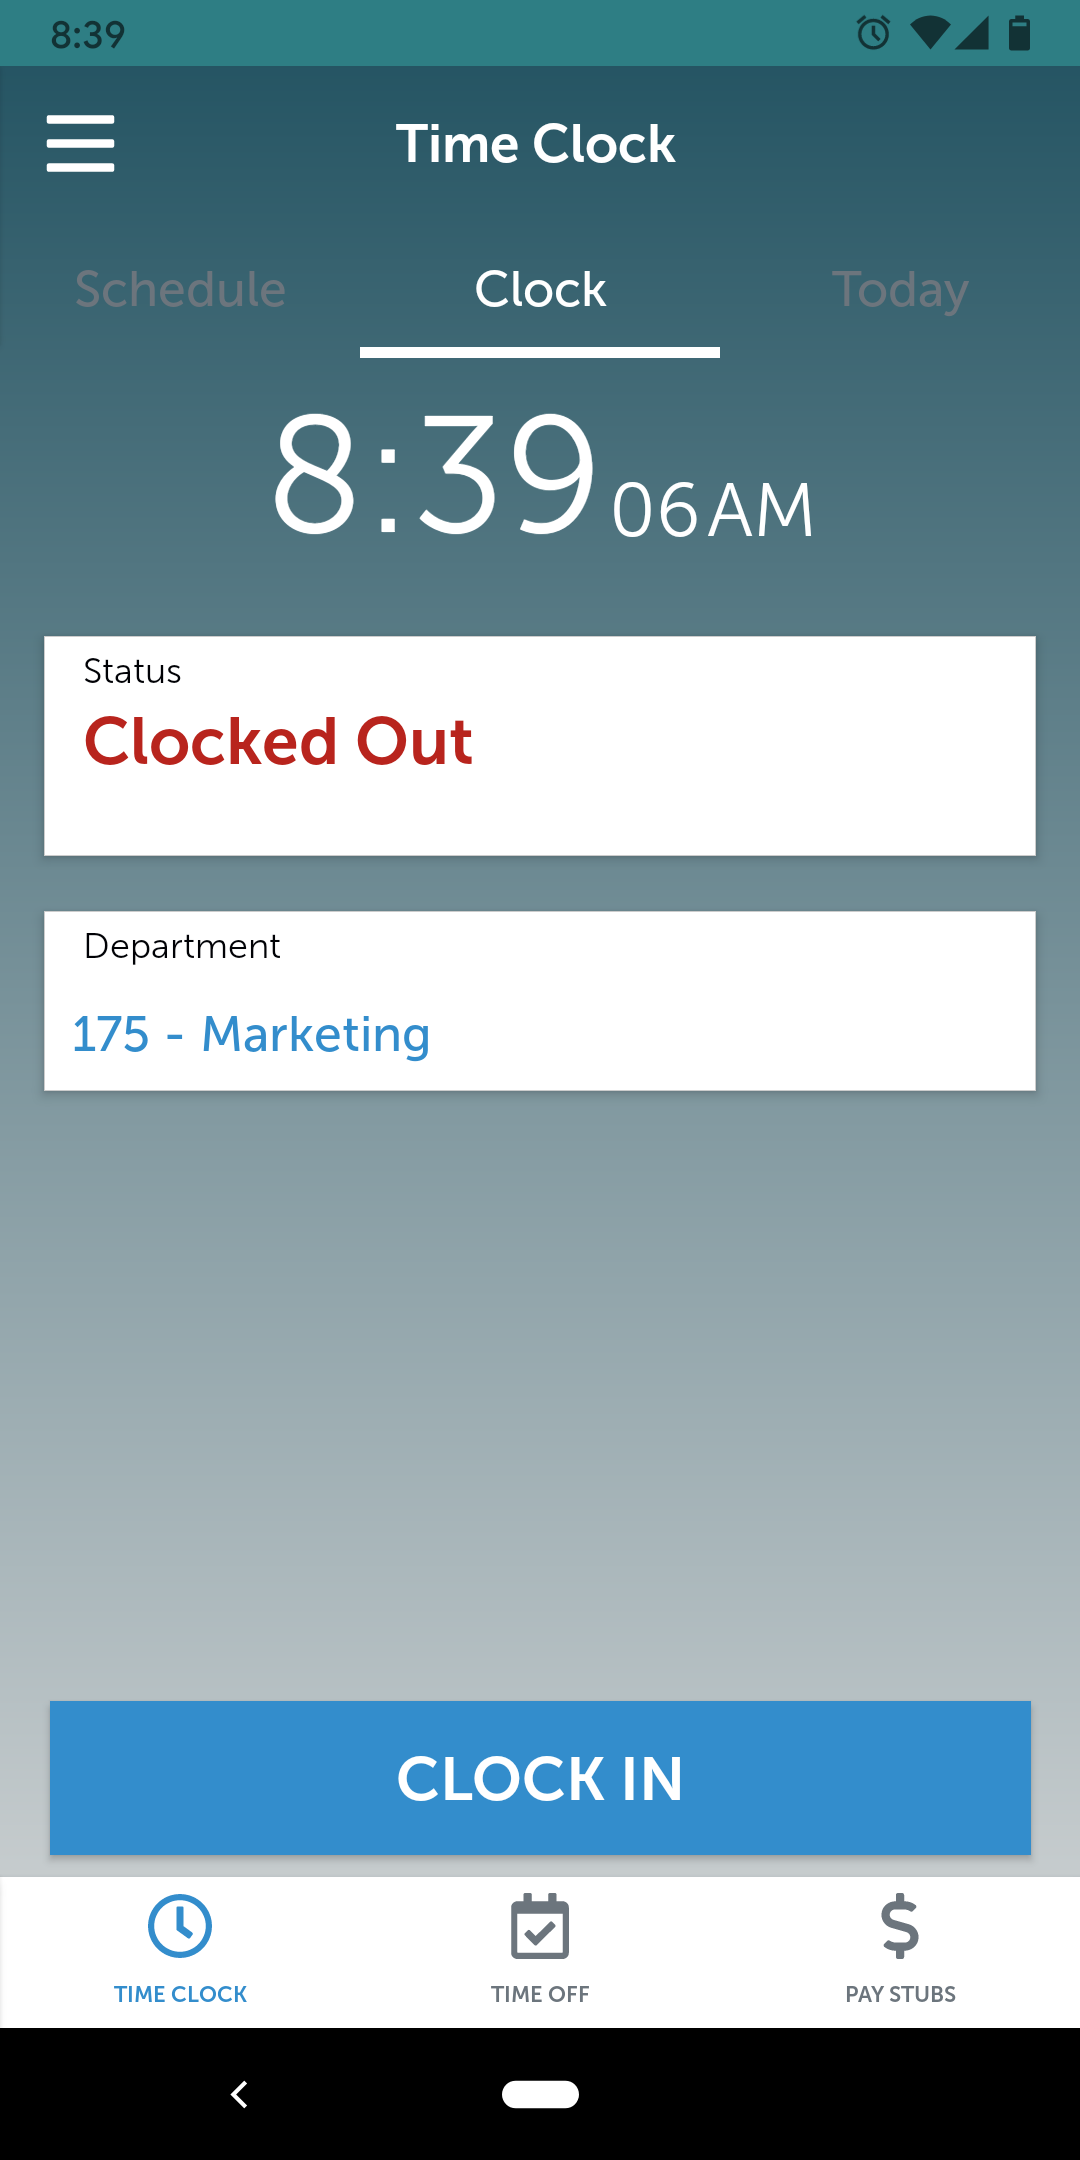 APS Mobile app - employee time clock